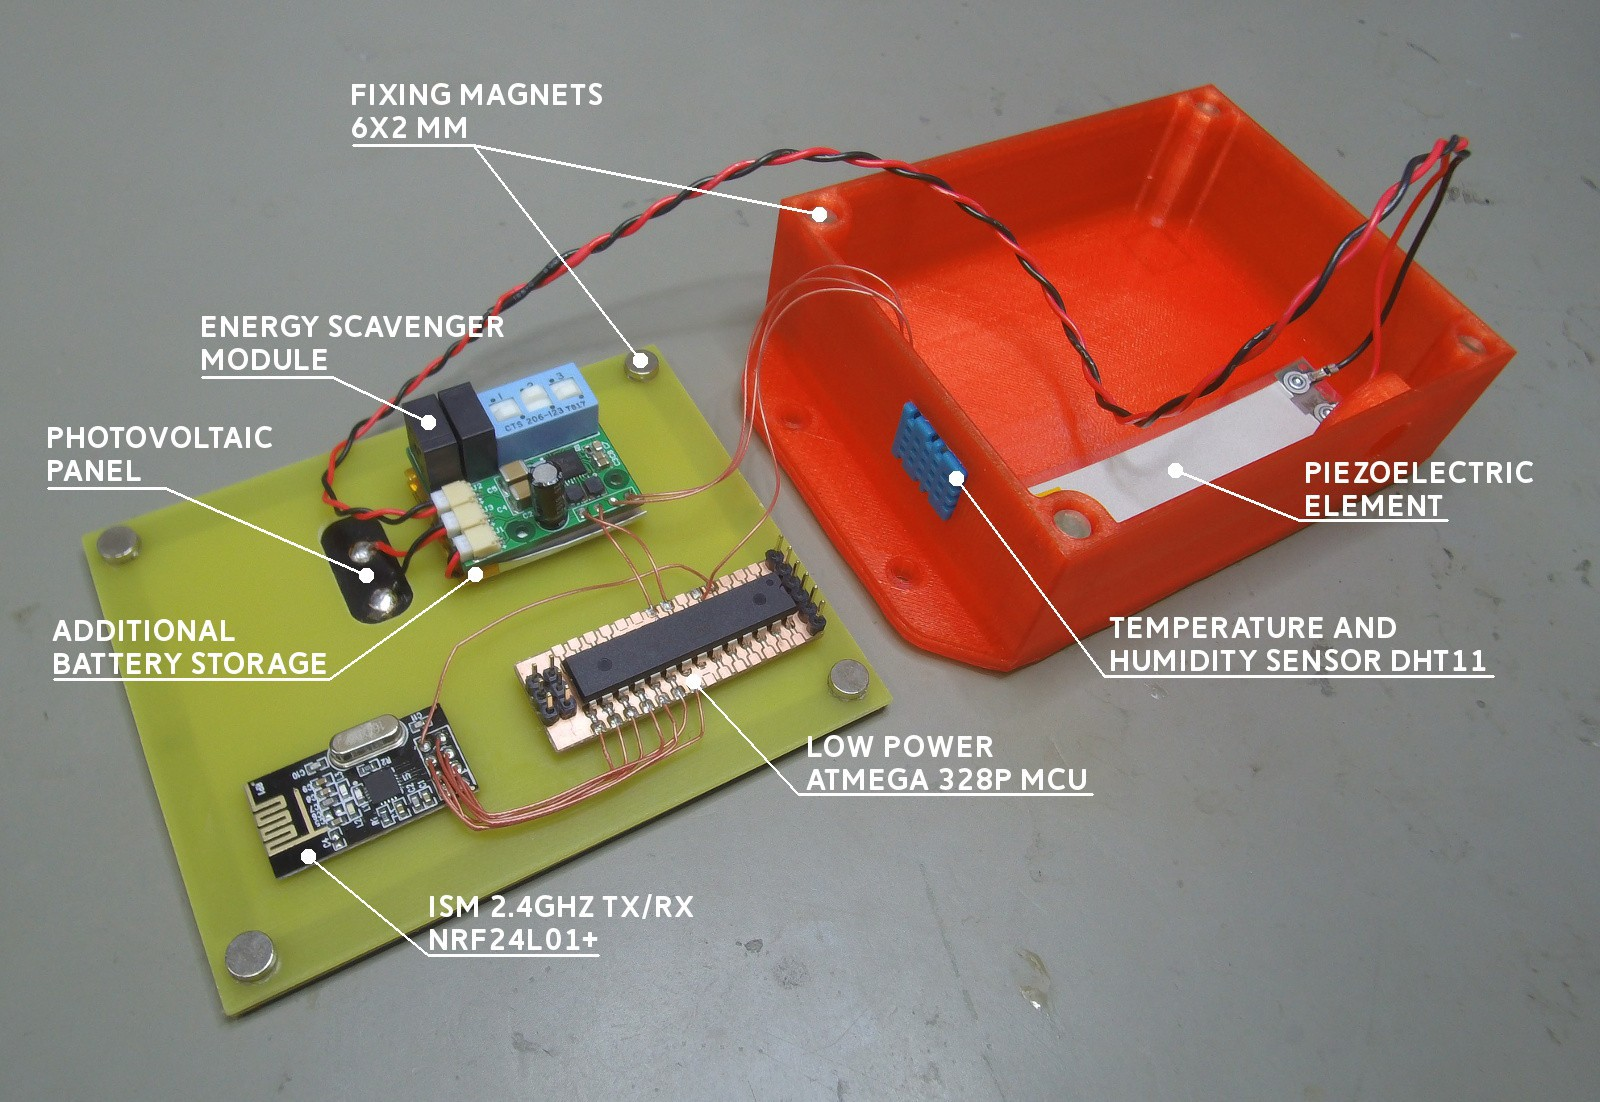 PTPM Energy Scavenger Snatches Electricity From Thin Air